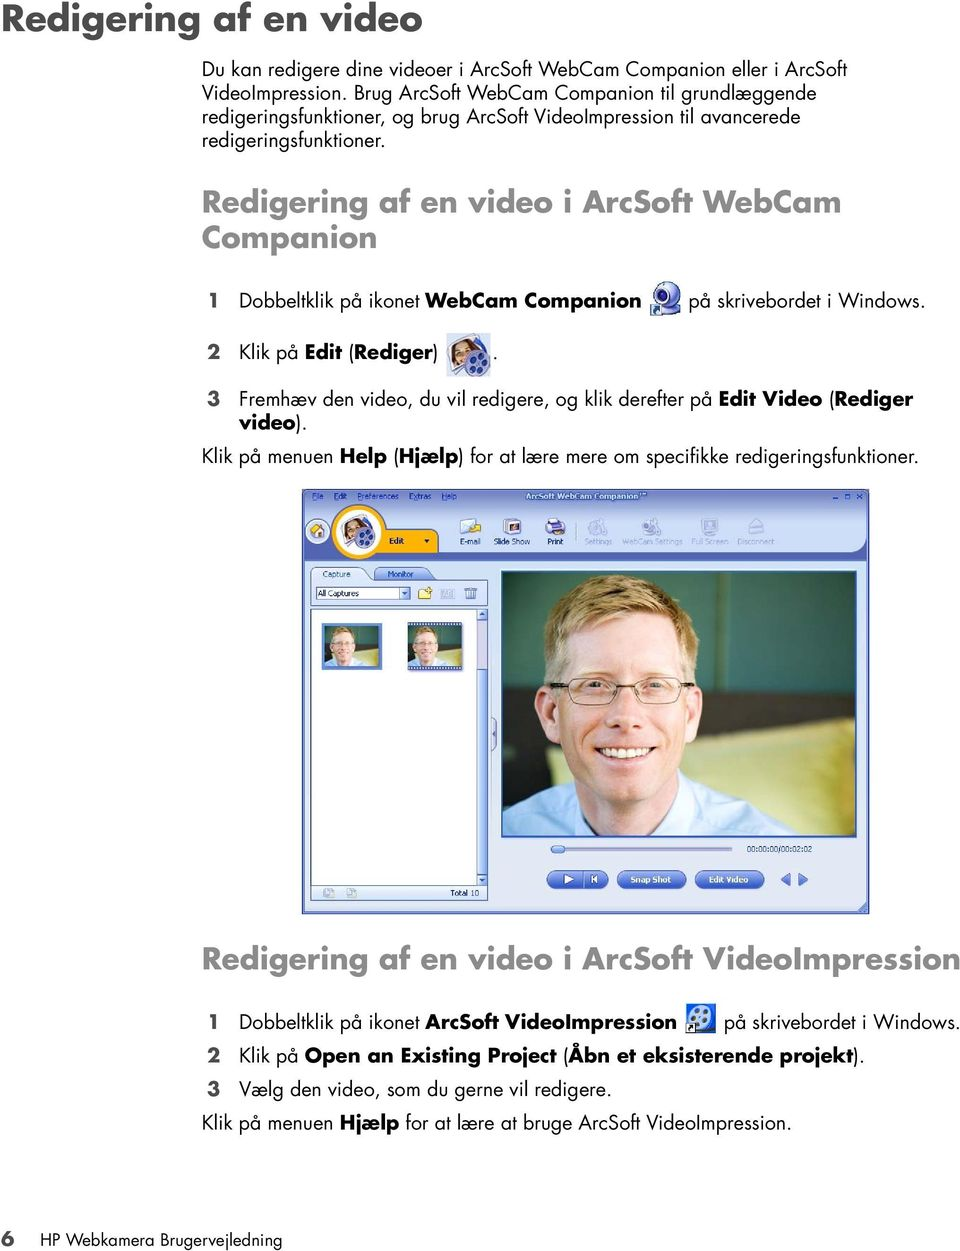 Redigering af en video i ArcSoft WebCam Companion 1 Dobbeltklik på ikonet WebCam Companion på skrivebordet i Windows. 2 Klik på Edit (Rediger).